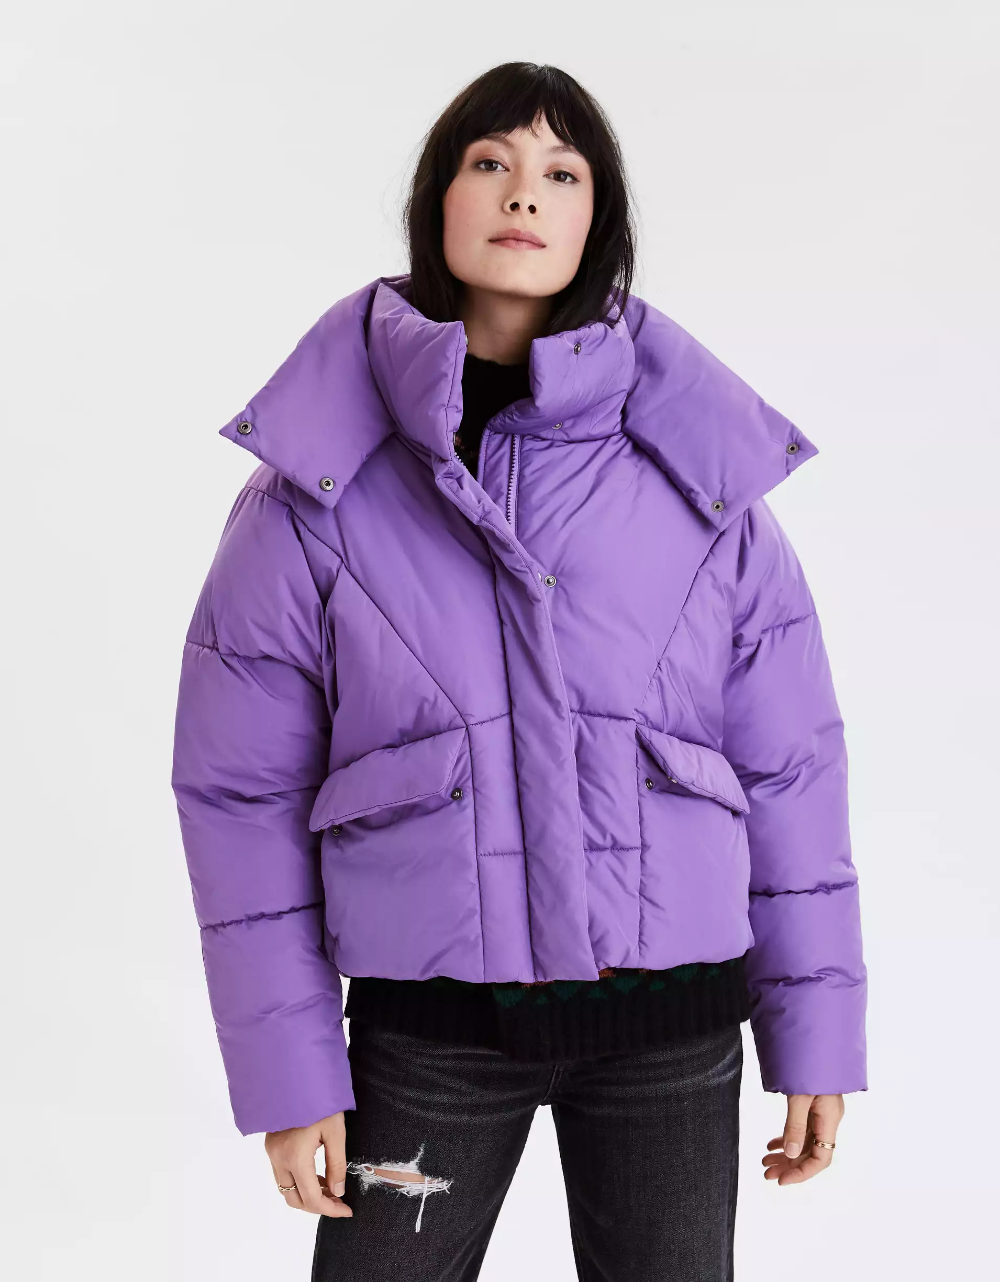 Ae 80 S Puffer Jacket Clothes For Women Mens Outfitters Clothes [ 1282 x 1000 Pixel ]